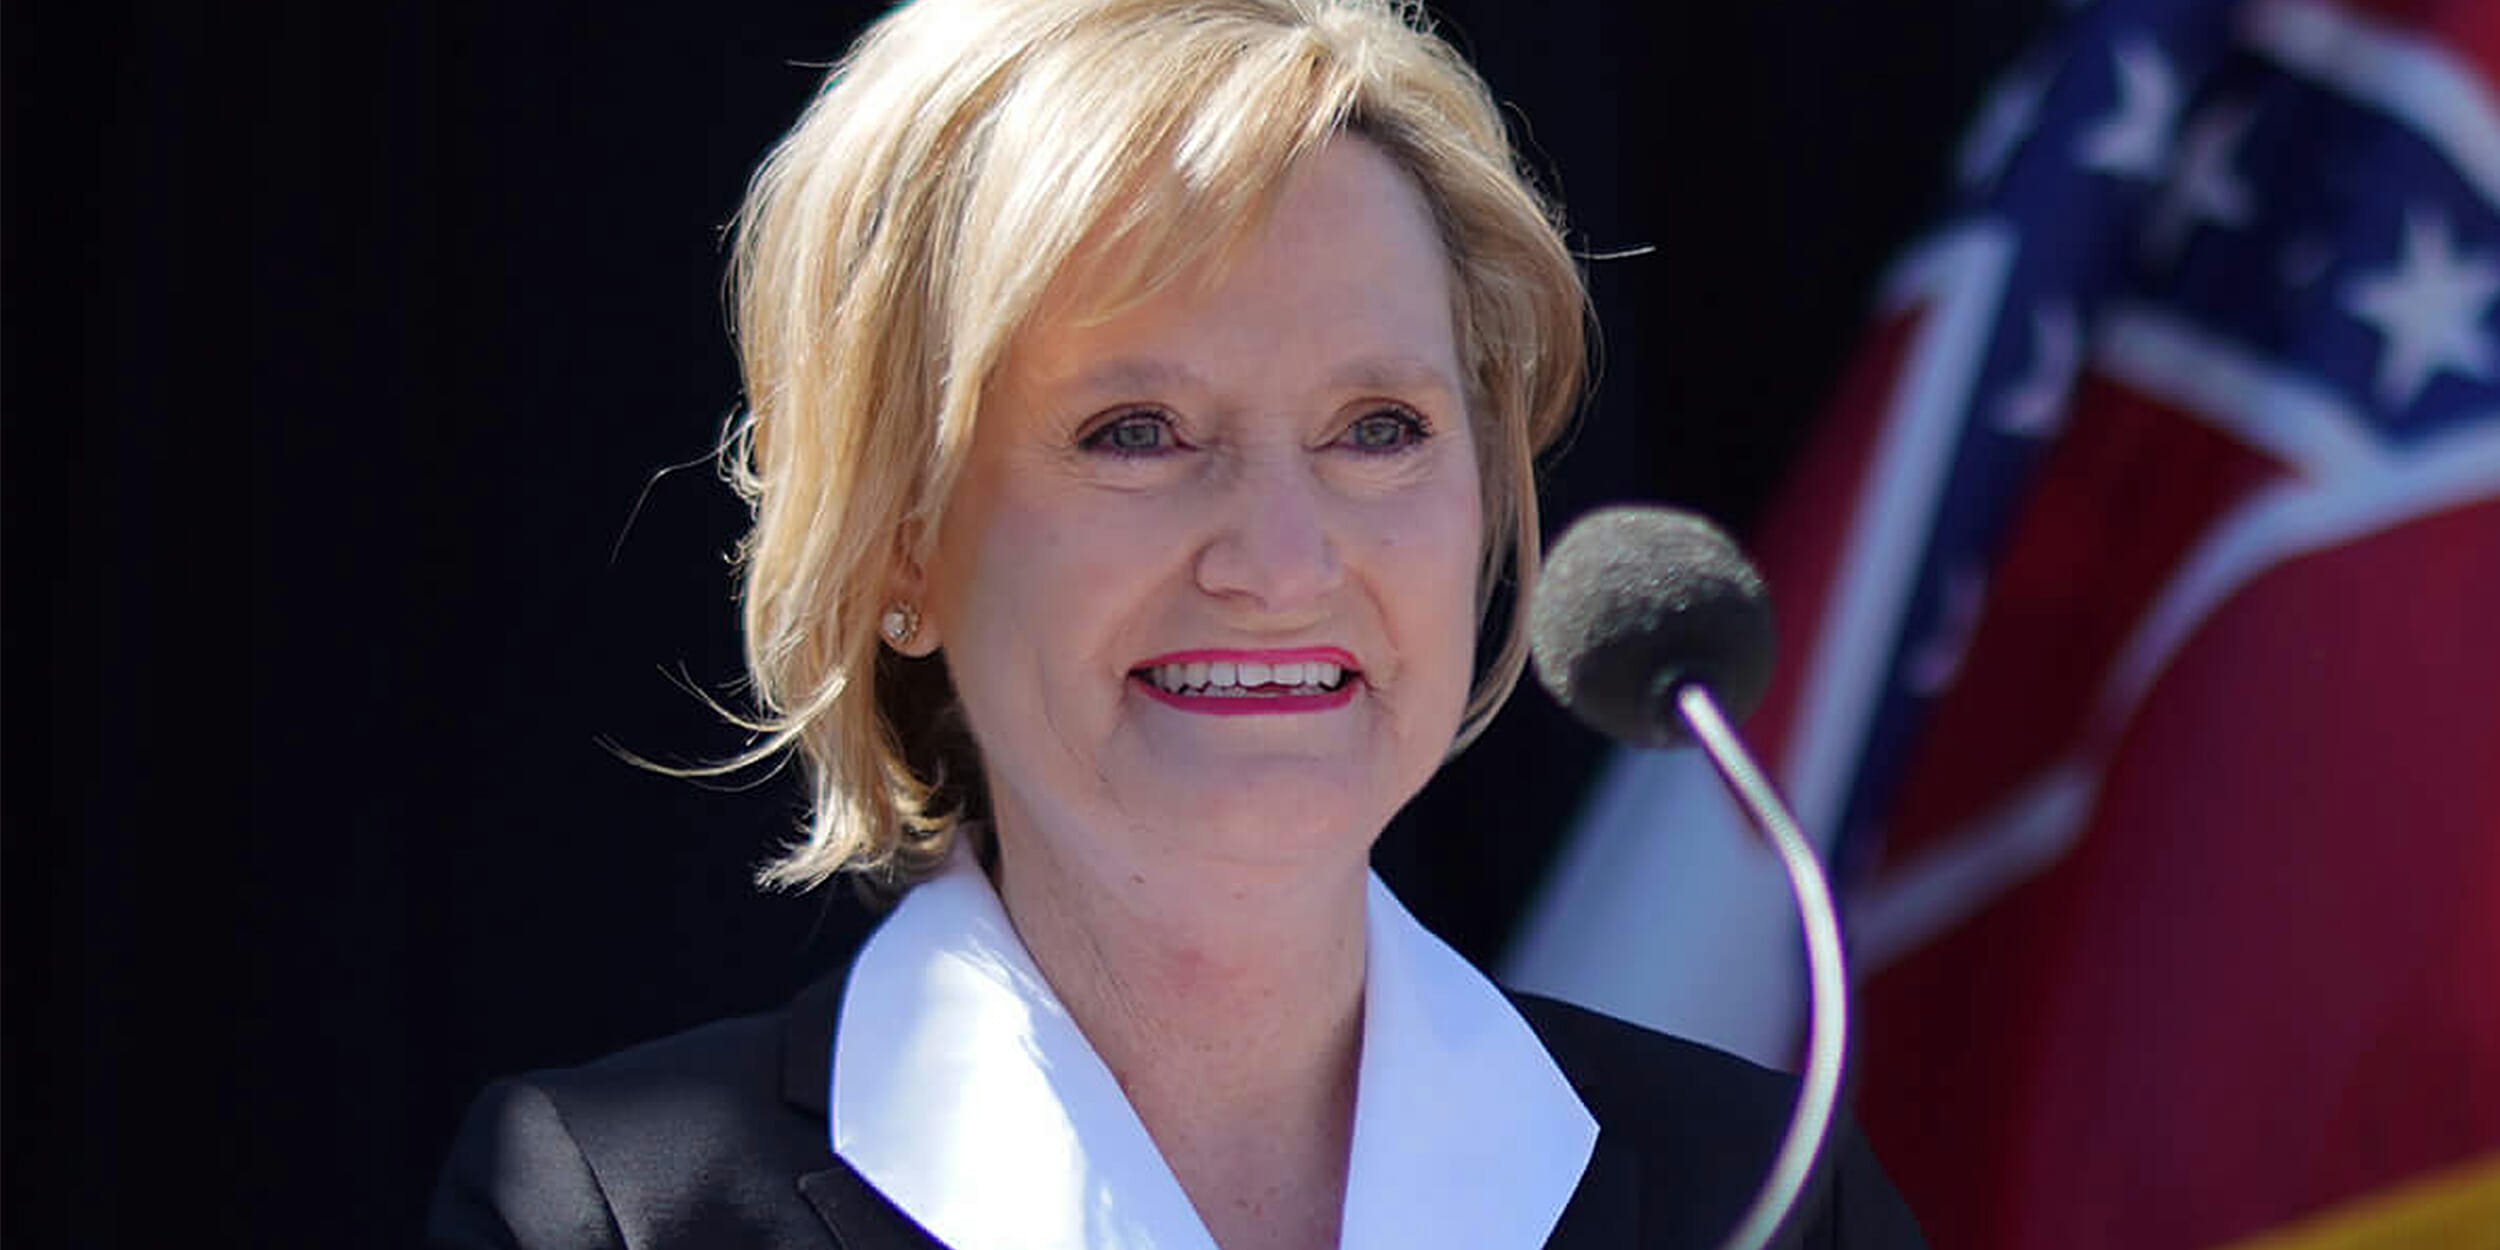 Mississippi's new U.S. Sen.-elect, Cindy Hyde-Smith